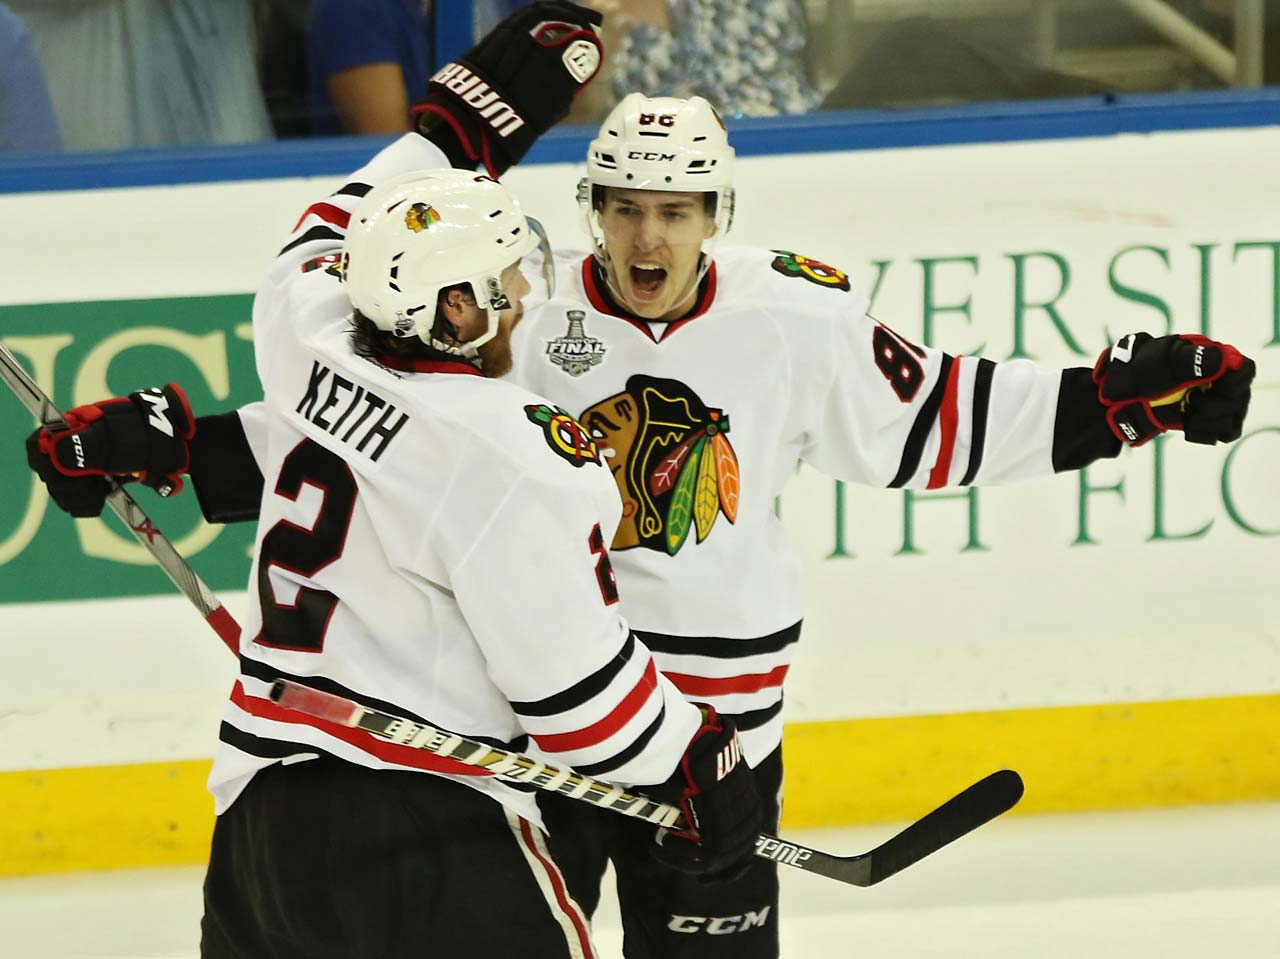 Teuvo Teravainen celebrates with Duncan Keith.